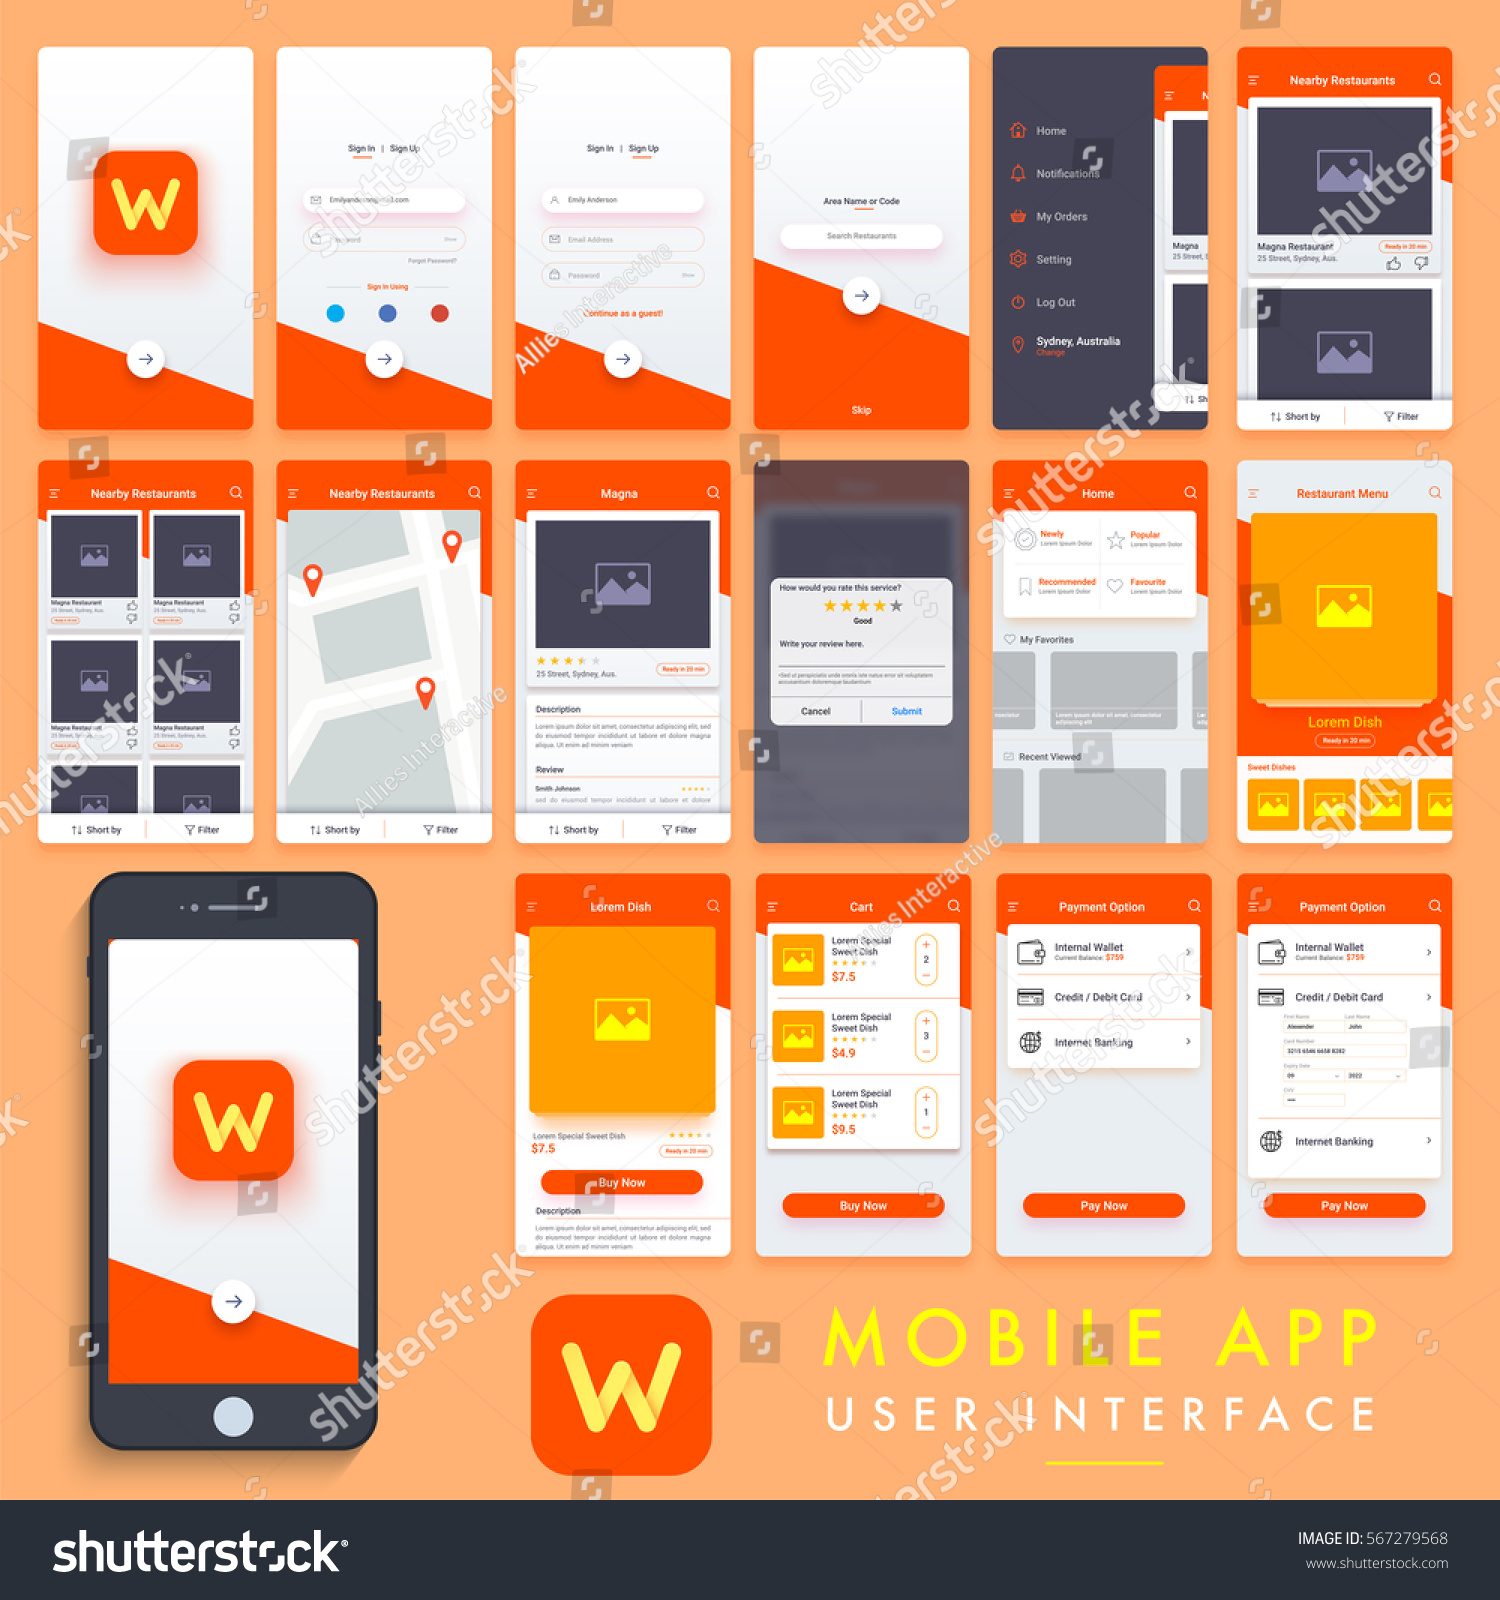 Search mobile apps material design ui stock vector